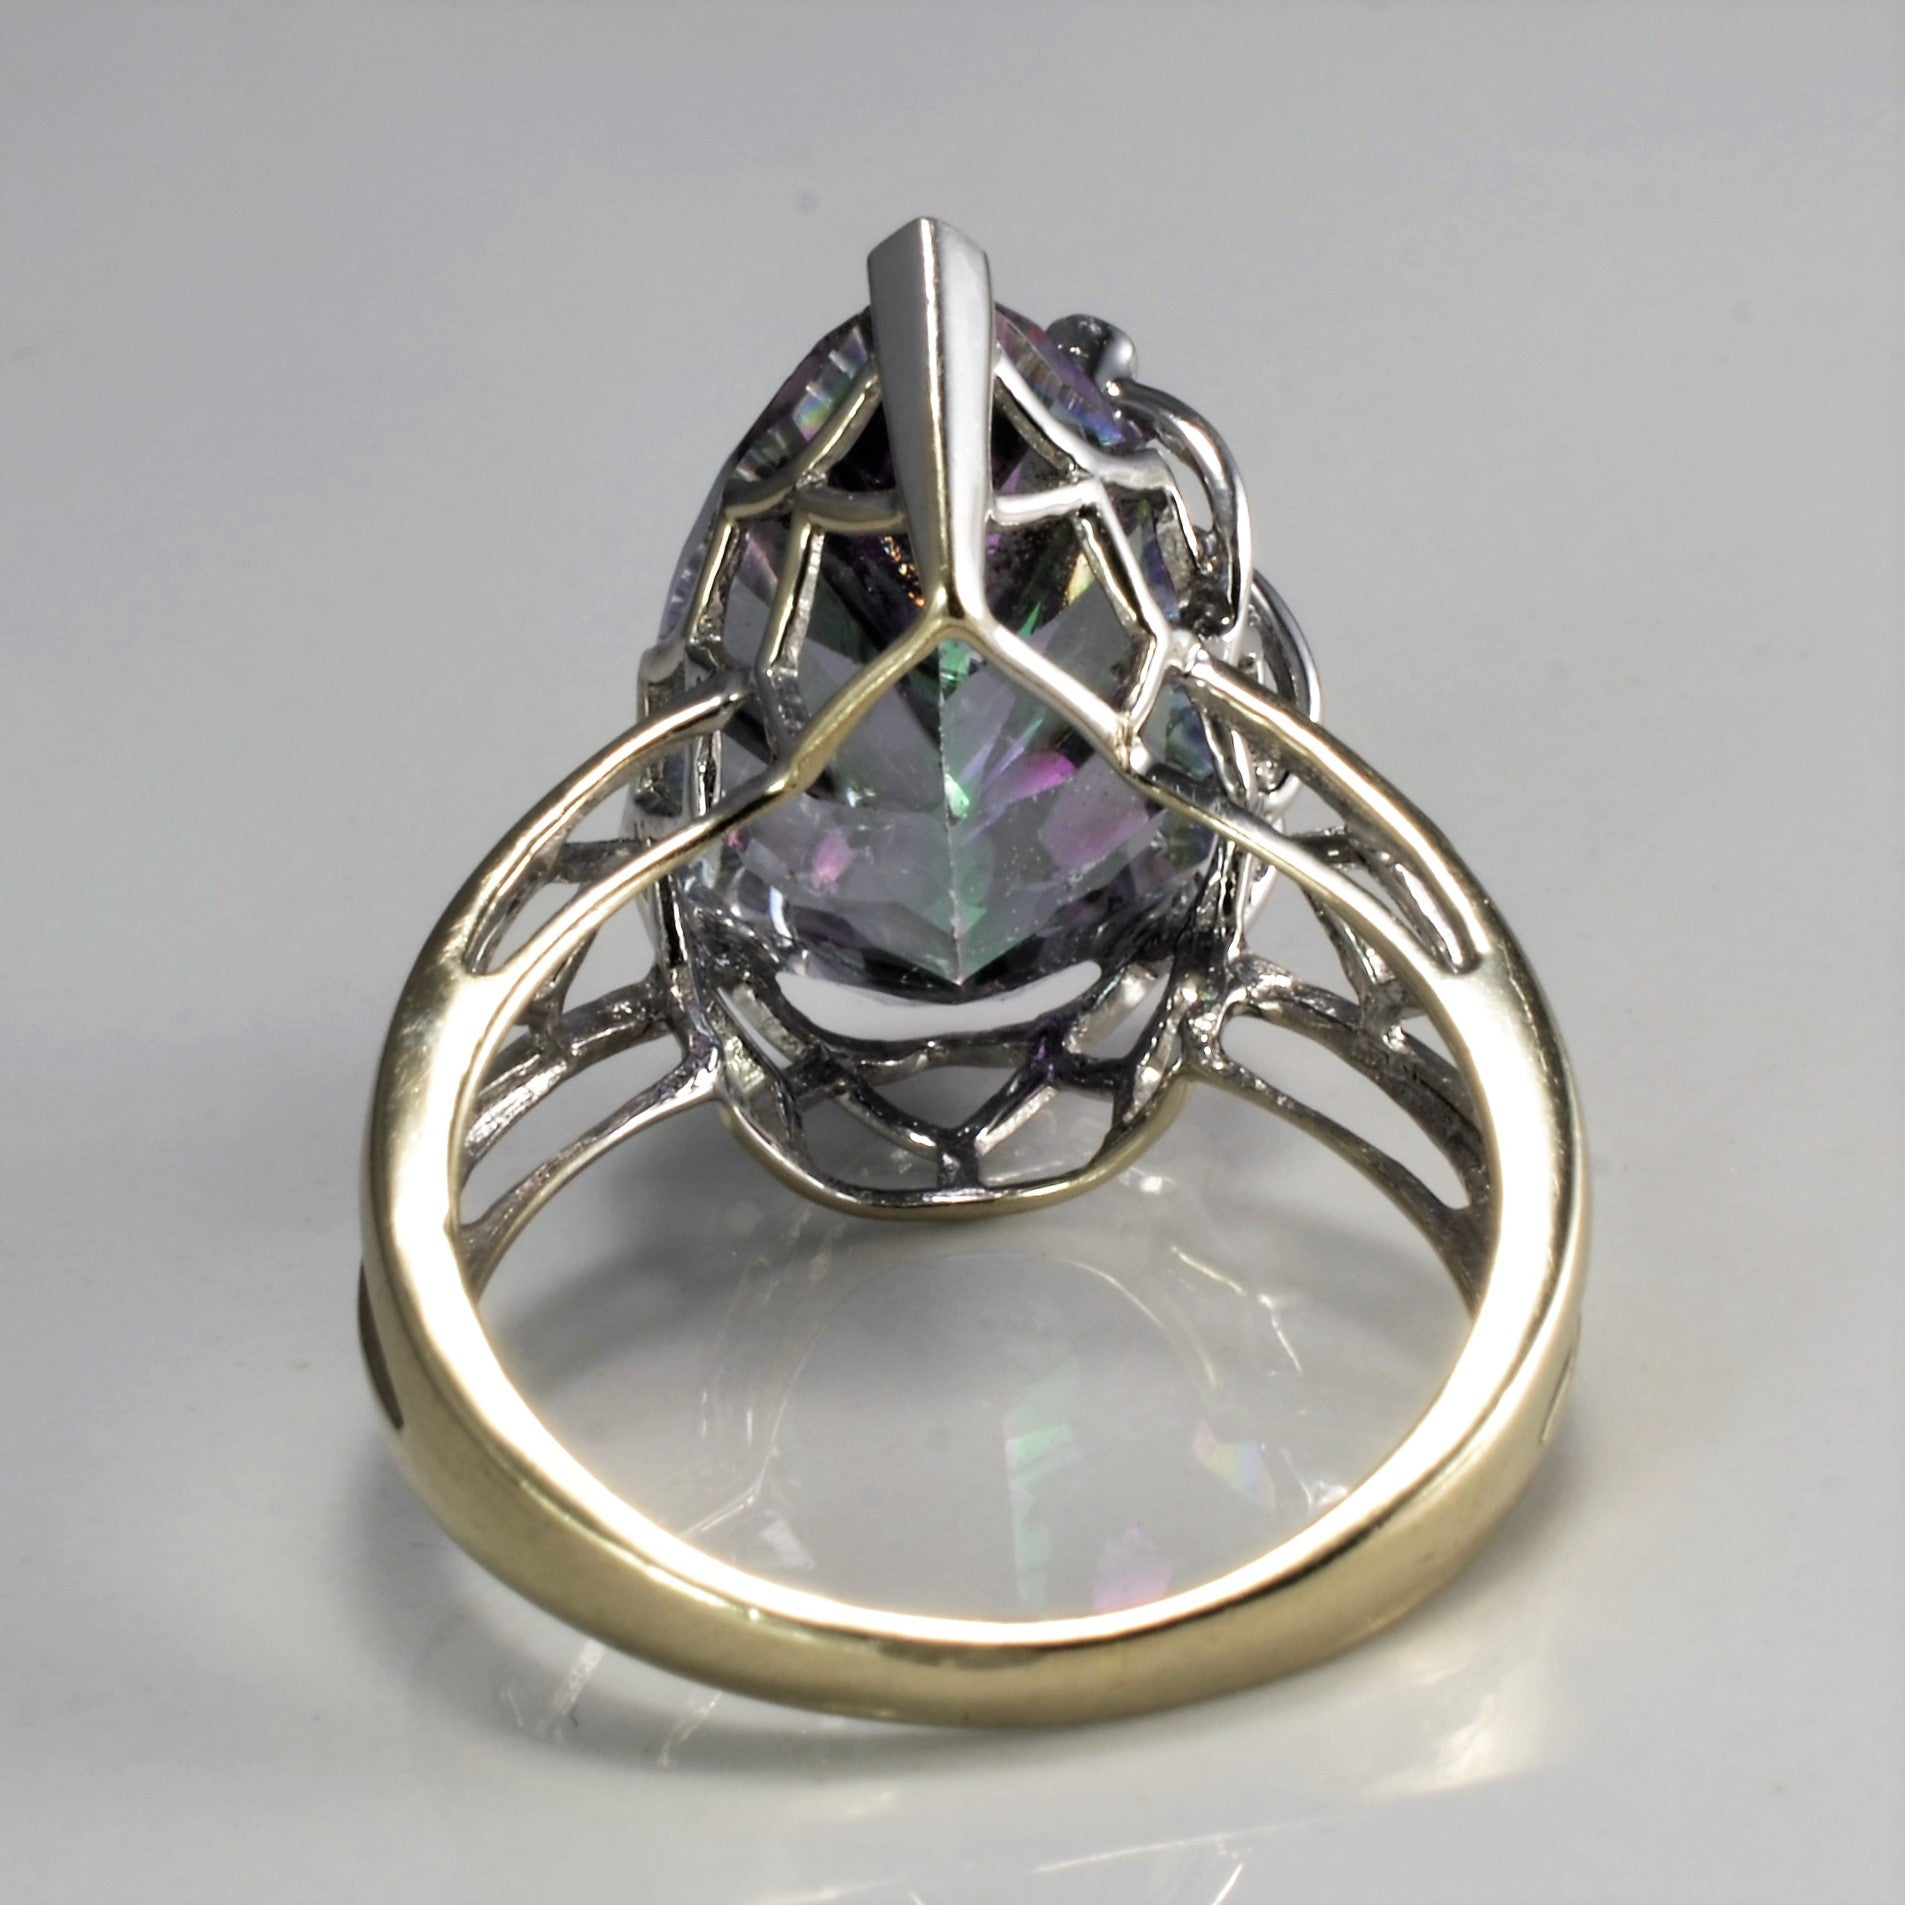 High Set Mystic Topaz & Diamond Ring | 0.02 ctw, SZ 7.5 |